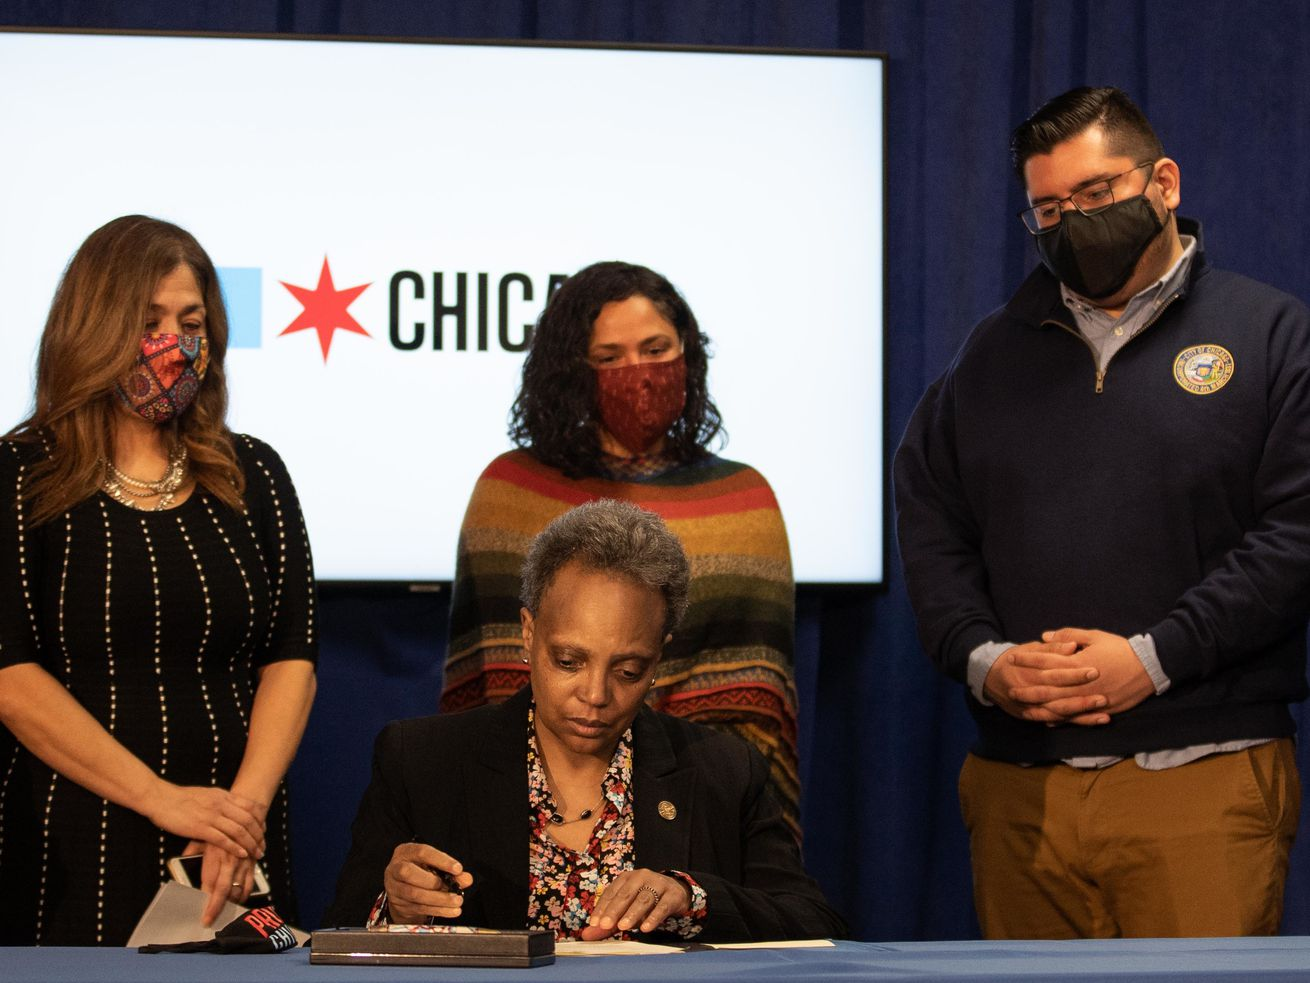 Chicago Mayor Lori Lightfoot signs a revised version of the Welcoming City Ordinance at City Hall on Tuesday, Feb. 23, 2021. Joining her were (from left) Instituto del Progreso Latino President and CEO Karina Ayala-Bermejo, Ald. Rossana Rodriguez (33rd) and Ald. Carlos Ramirez-Rosa (35th).